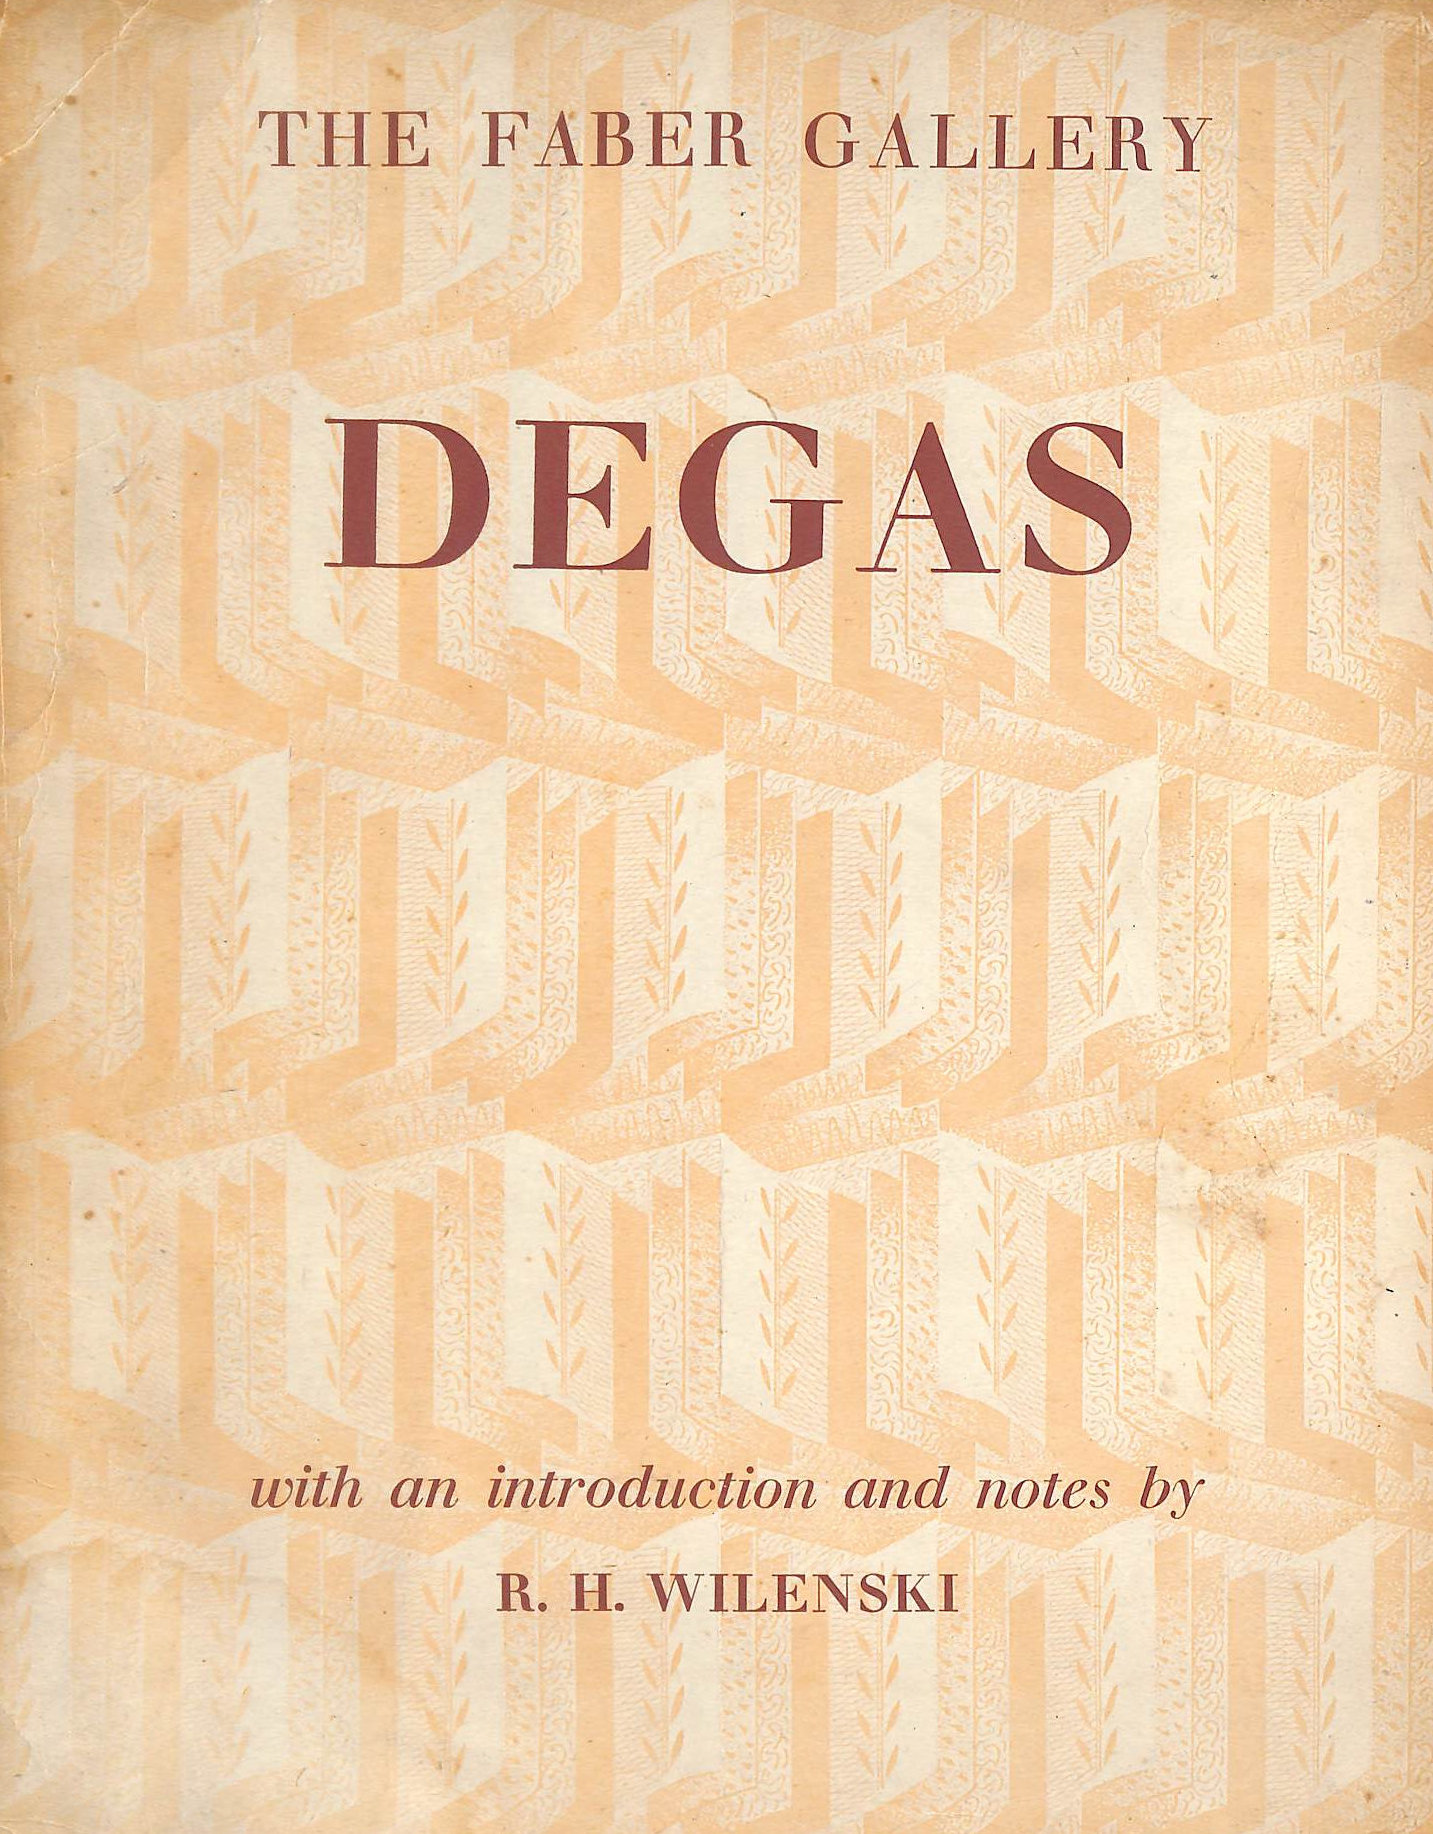 Image for Degas  - The Faber Gallery